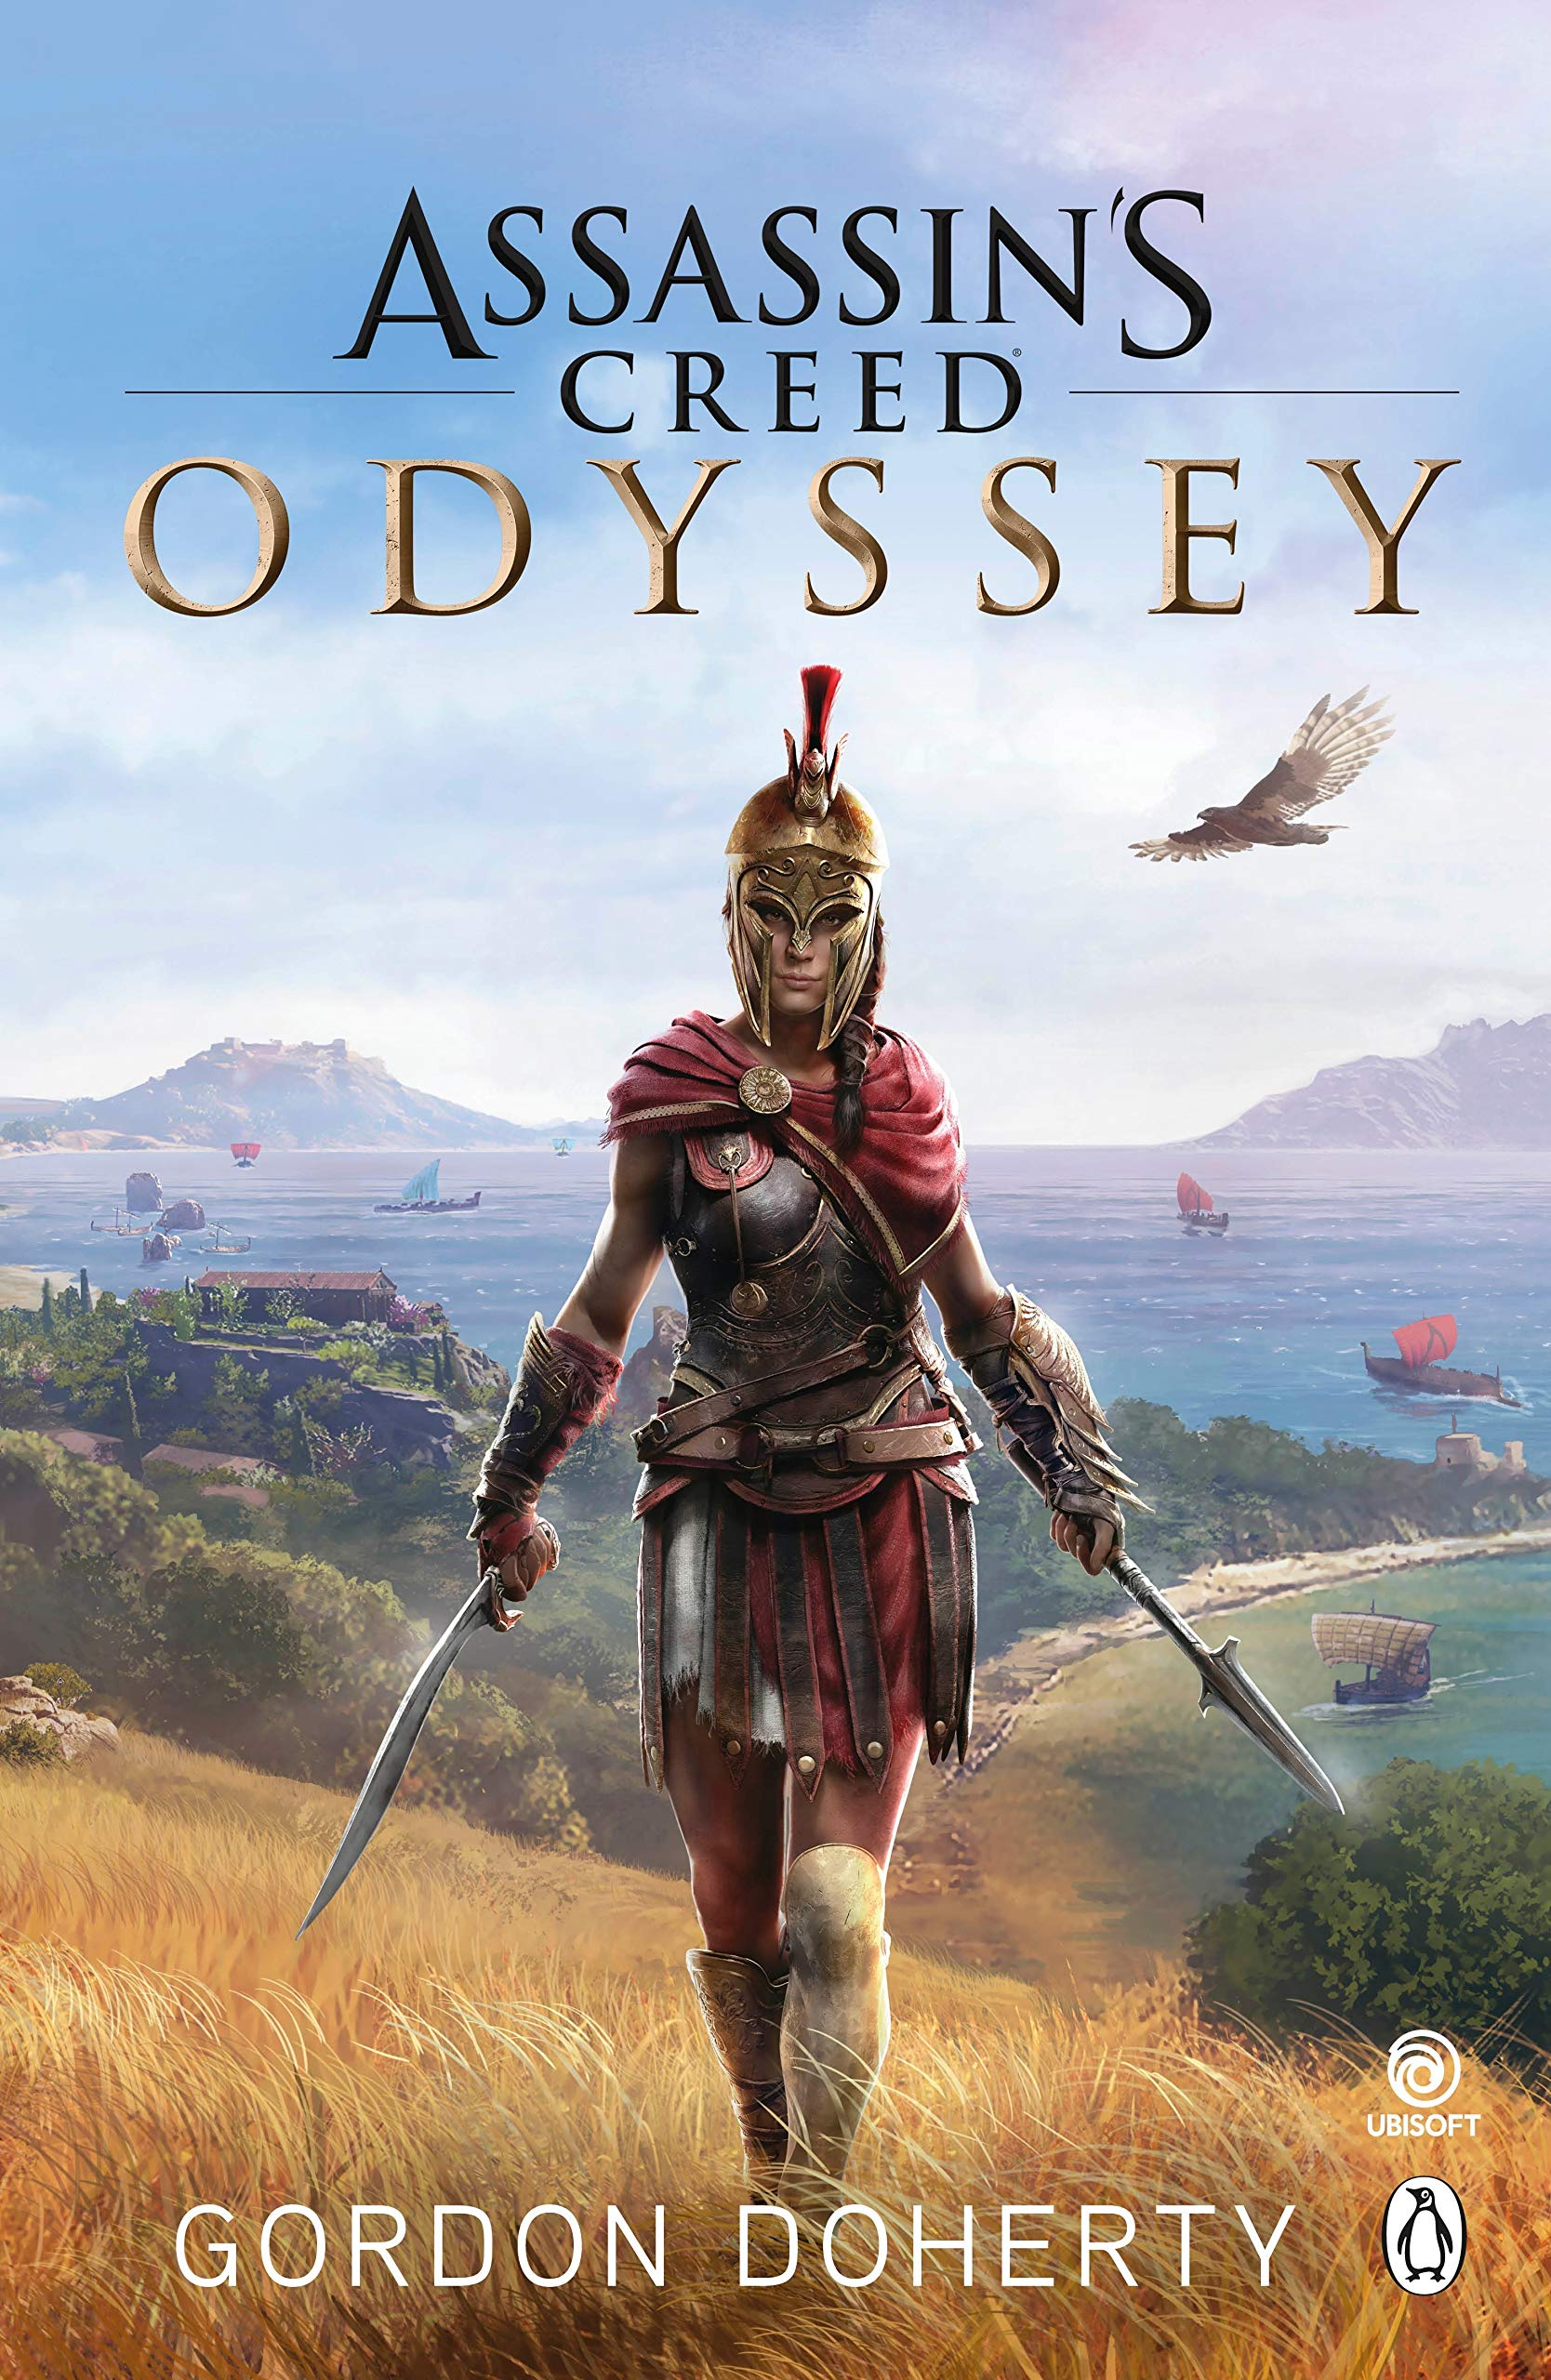 Odyssey AssassinS Creed: The official novel of the highly anticipated new game: Amazon.es: Vv.Aa, Vv.Aa: Libros en idiomas extranjeros